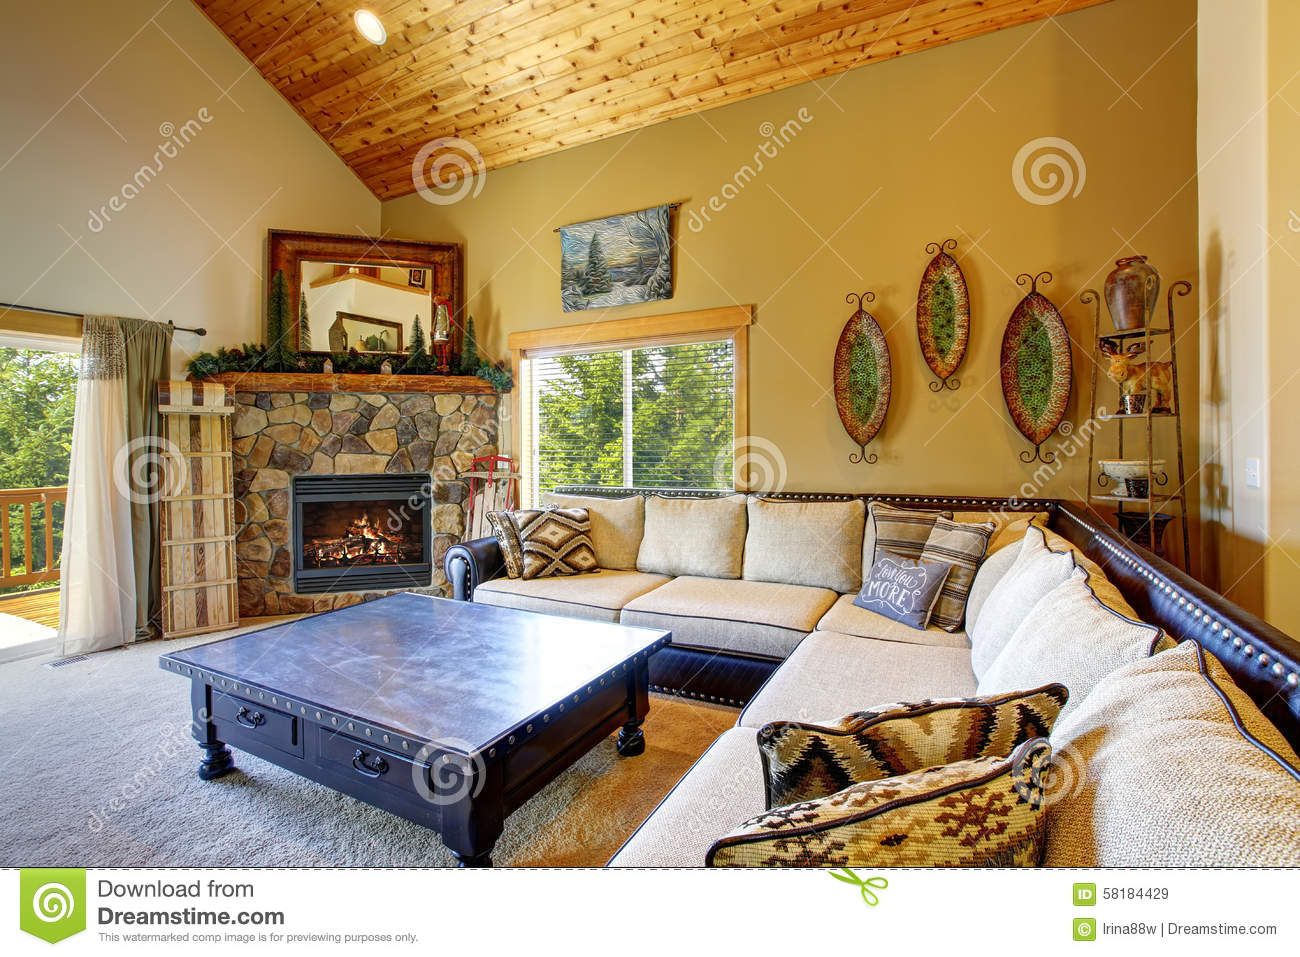 Mountain style decor in modern day living room stock for Modern day living room